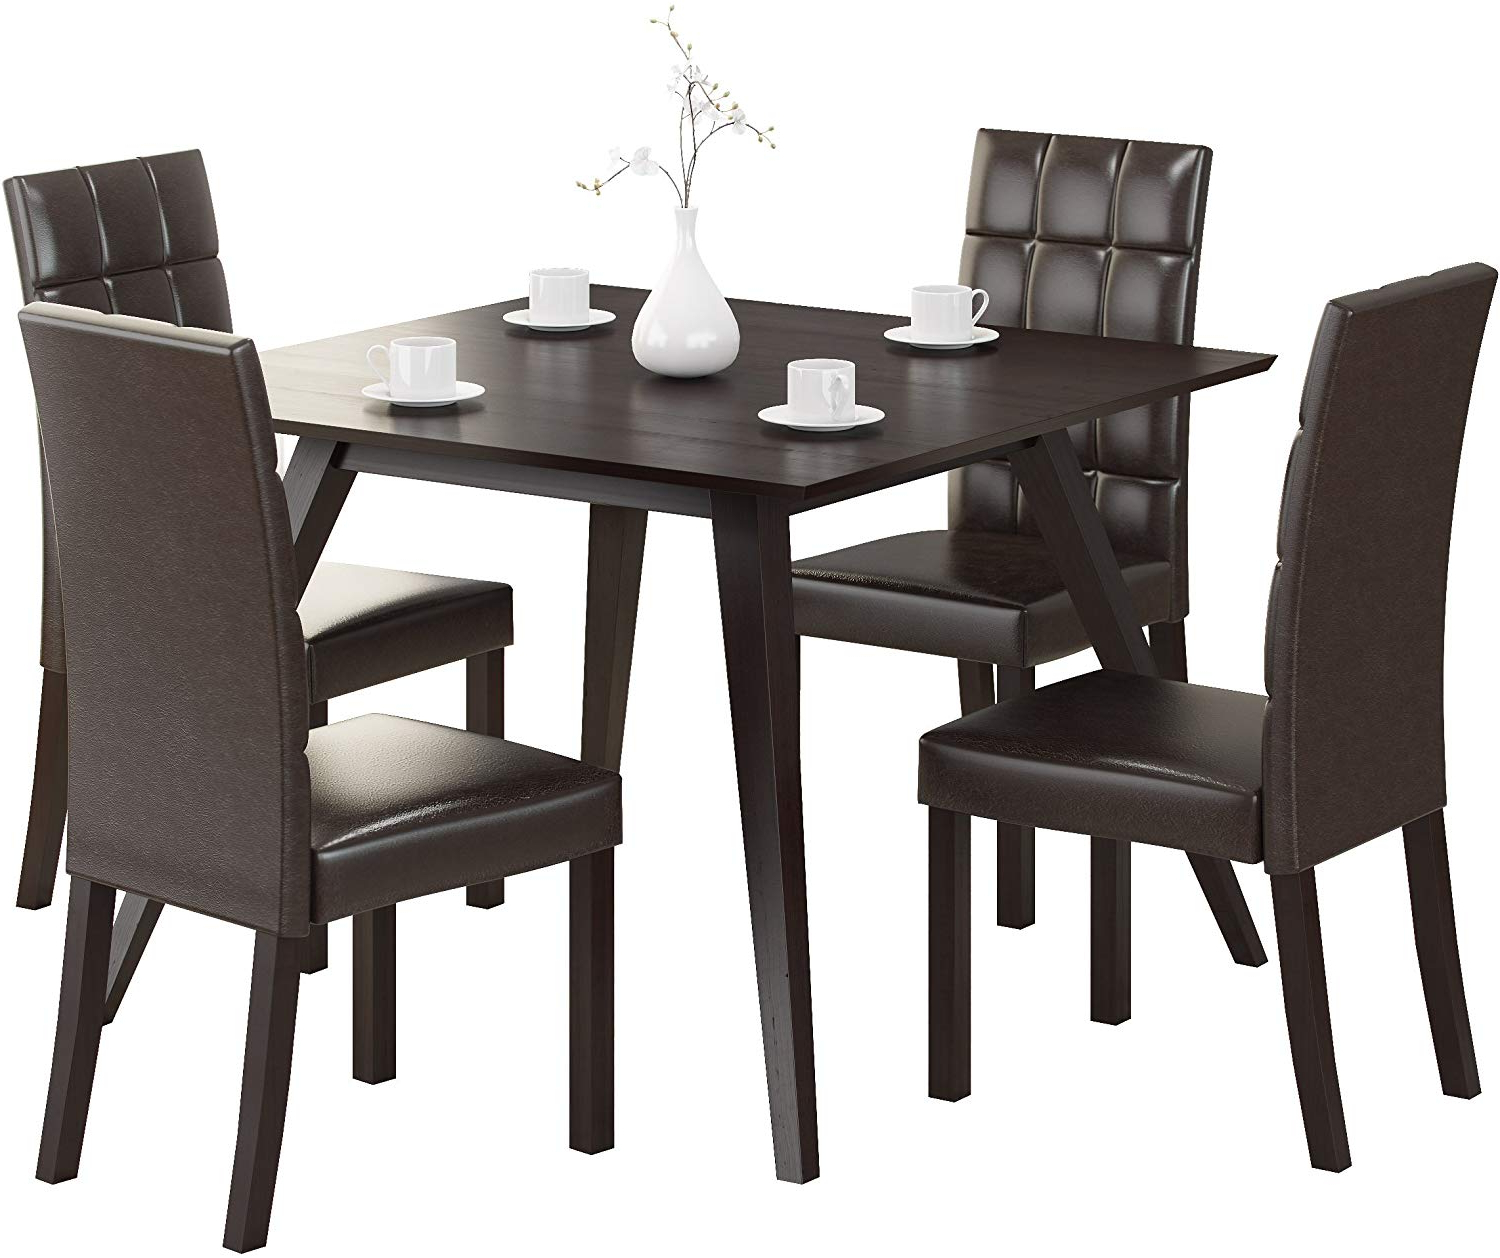 Recent Corliving Atwood Dining Set, Dark Brown Intended For Atwood Transitional Square Dining Tables (View 3 of 25)